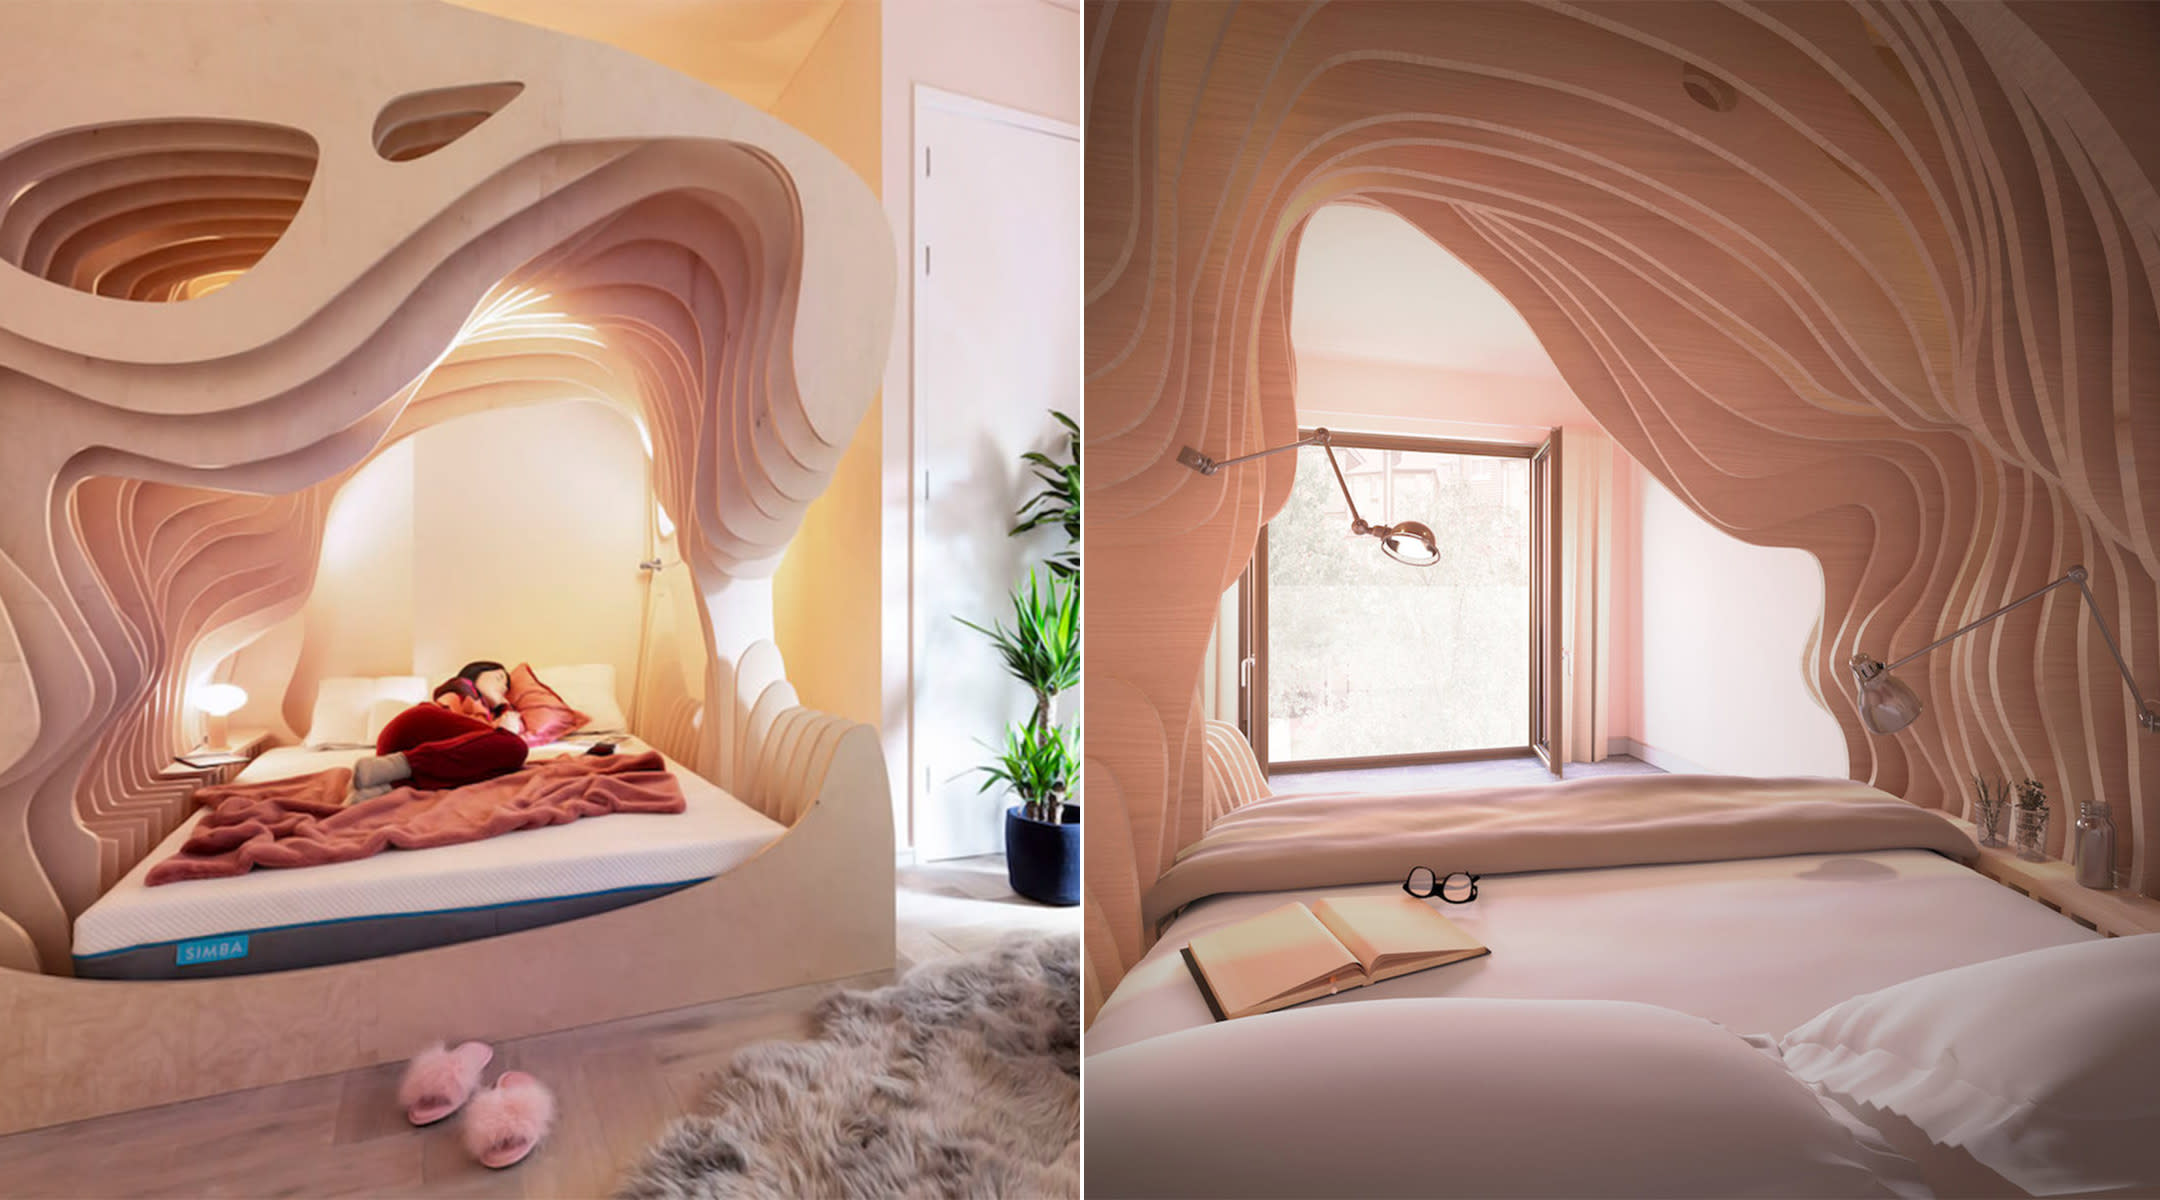 london hotel builds womb like rooms to promote better sleep